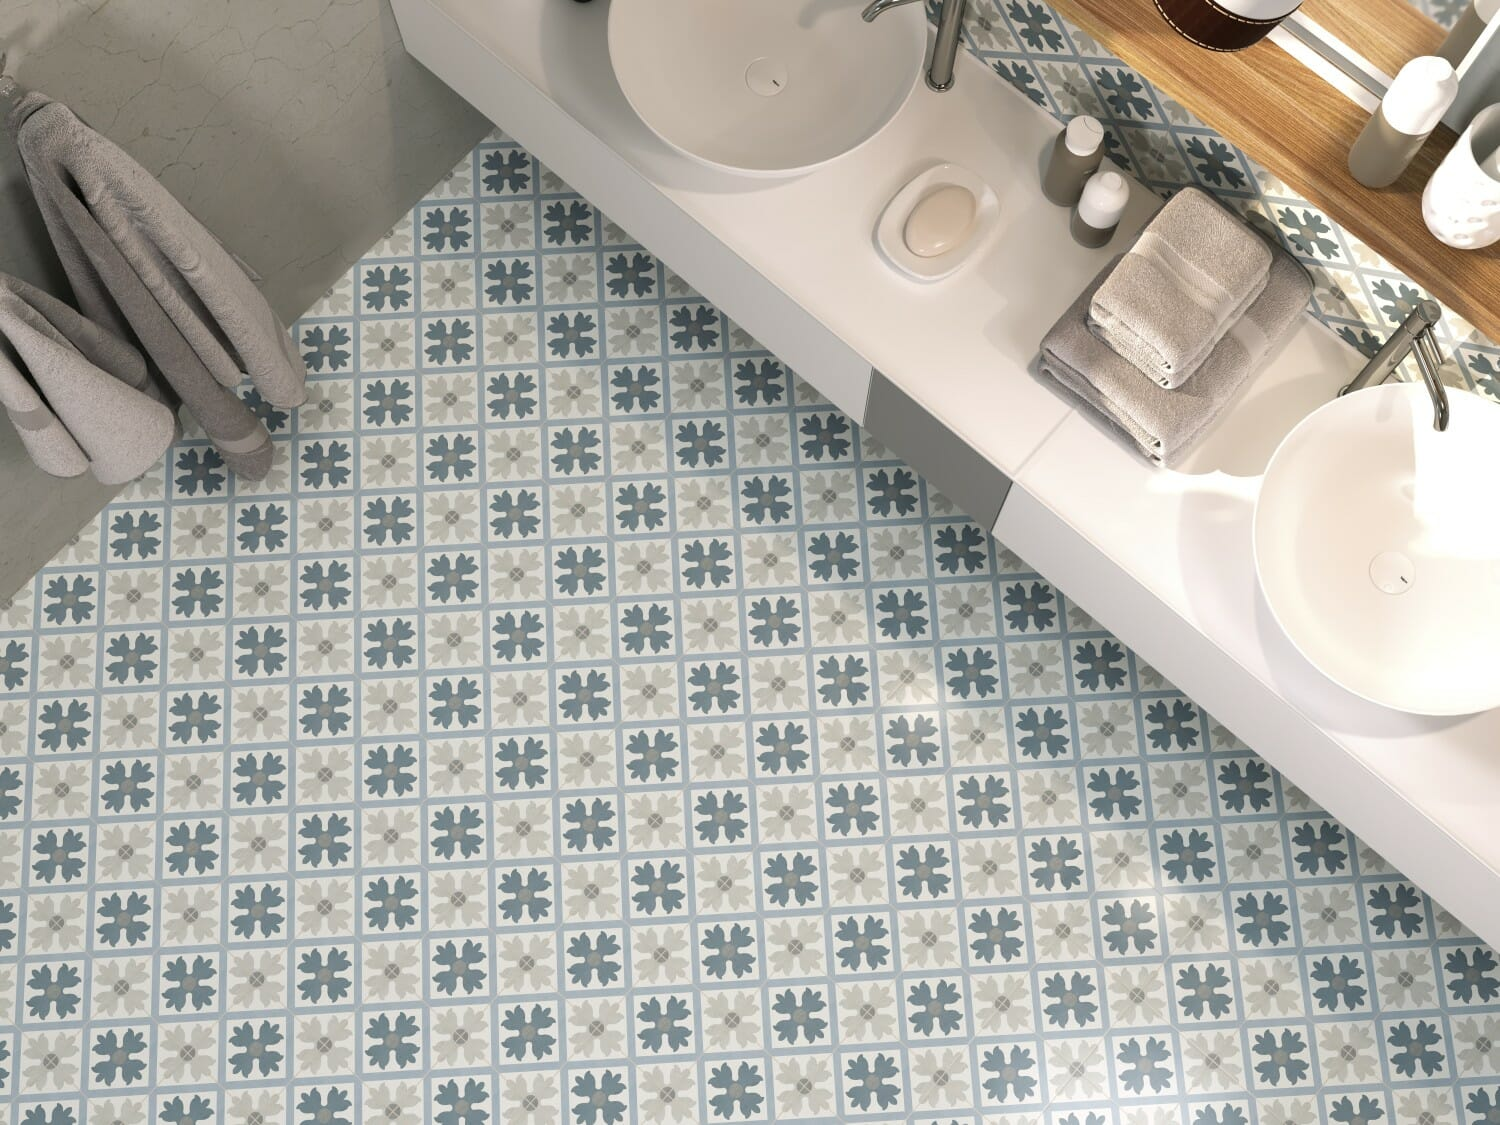 fiorella-series-martia-geometric-patterned-tiles-grey-marta